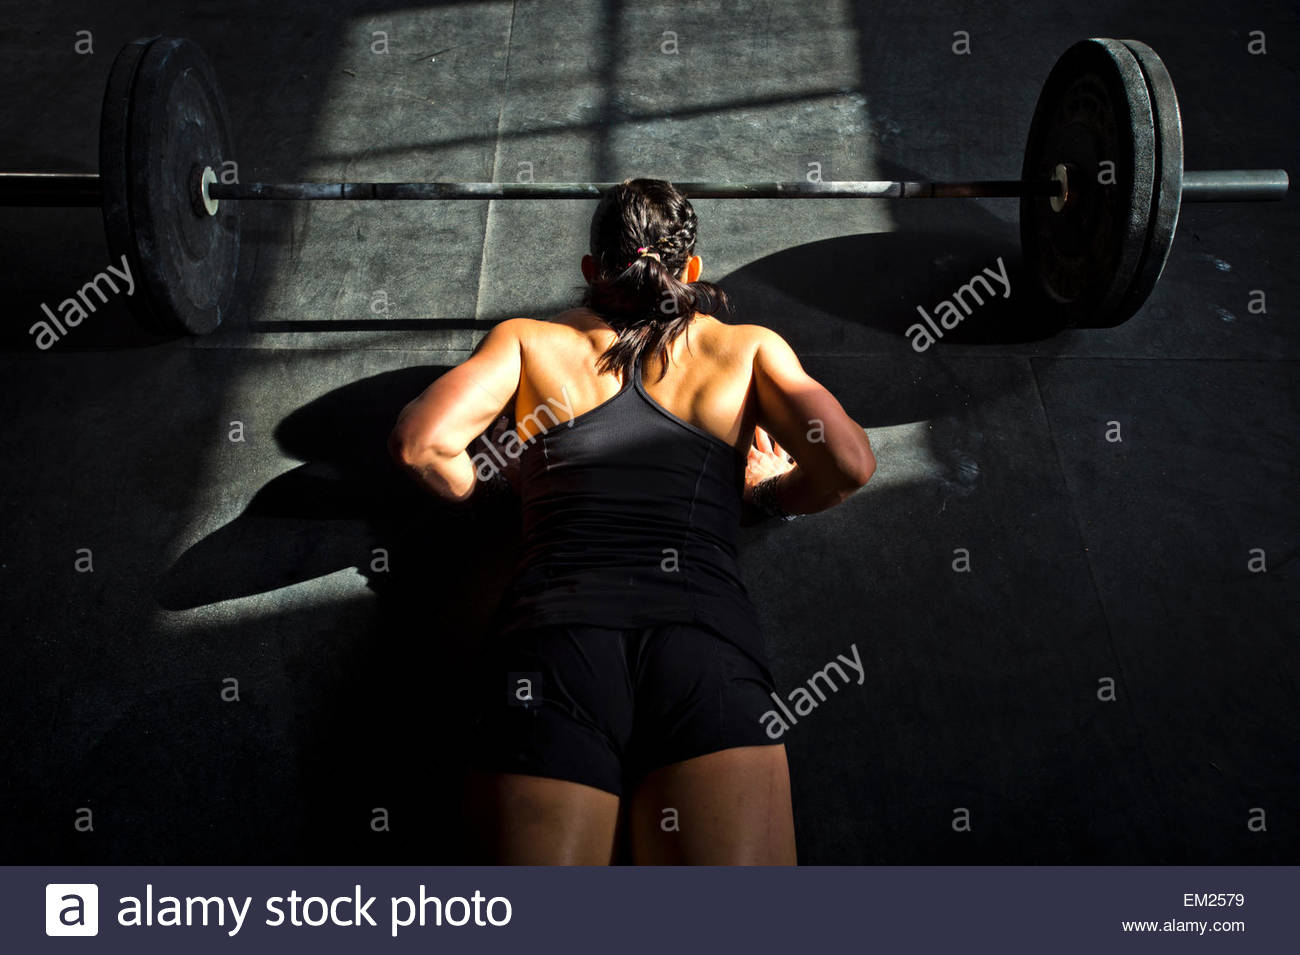 A female athlete working out at a crossfit gym. - Stock Image